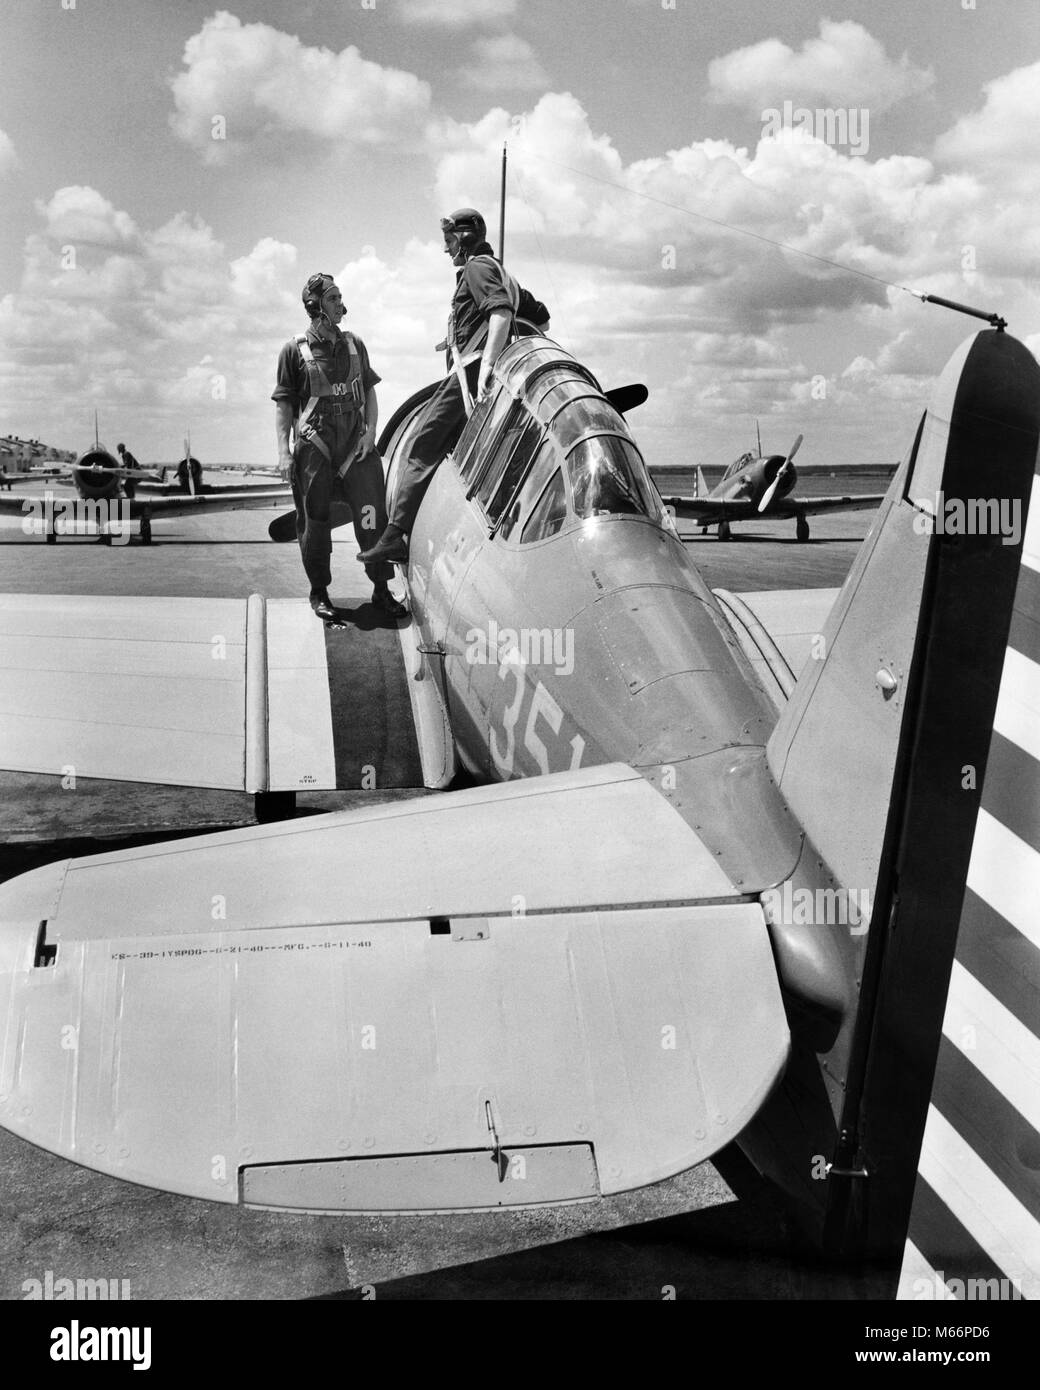 1940s 2 ARMY PILOTS STANDING FUSELAGE OF SLIDING COCKPIT SINGLE ENGINE AIRPLANE WING US ARMY AIR CORPS RANDOLPH - Stock Image